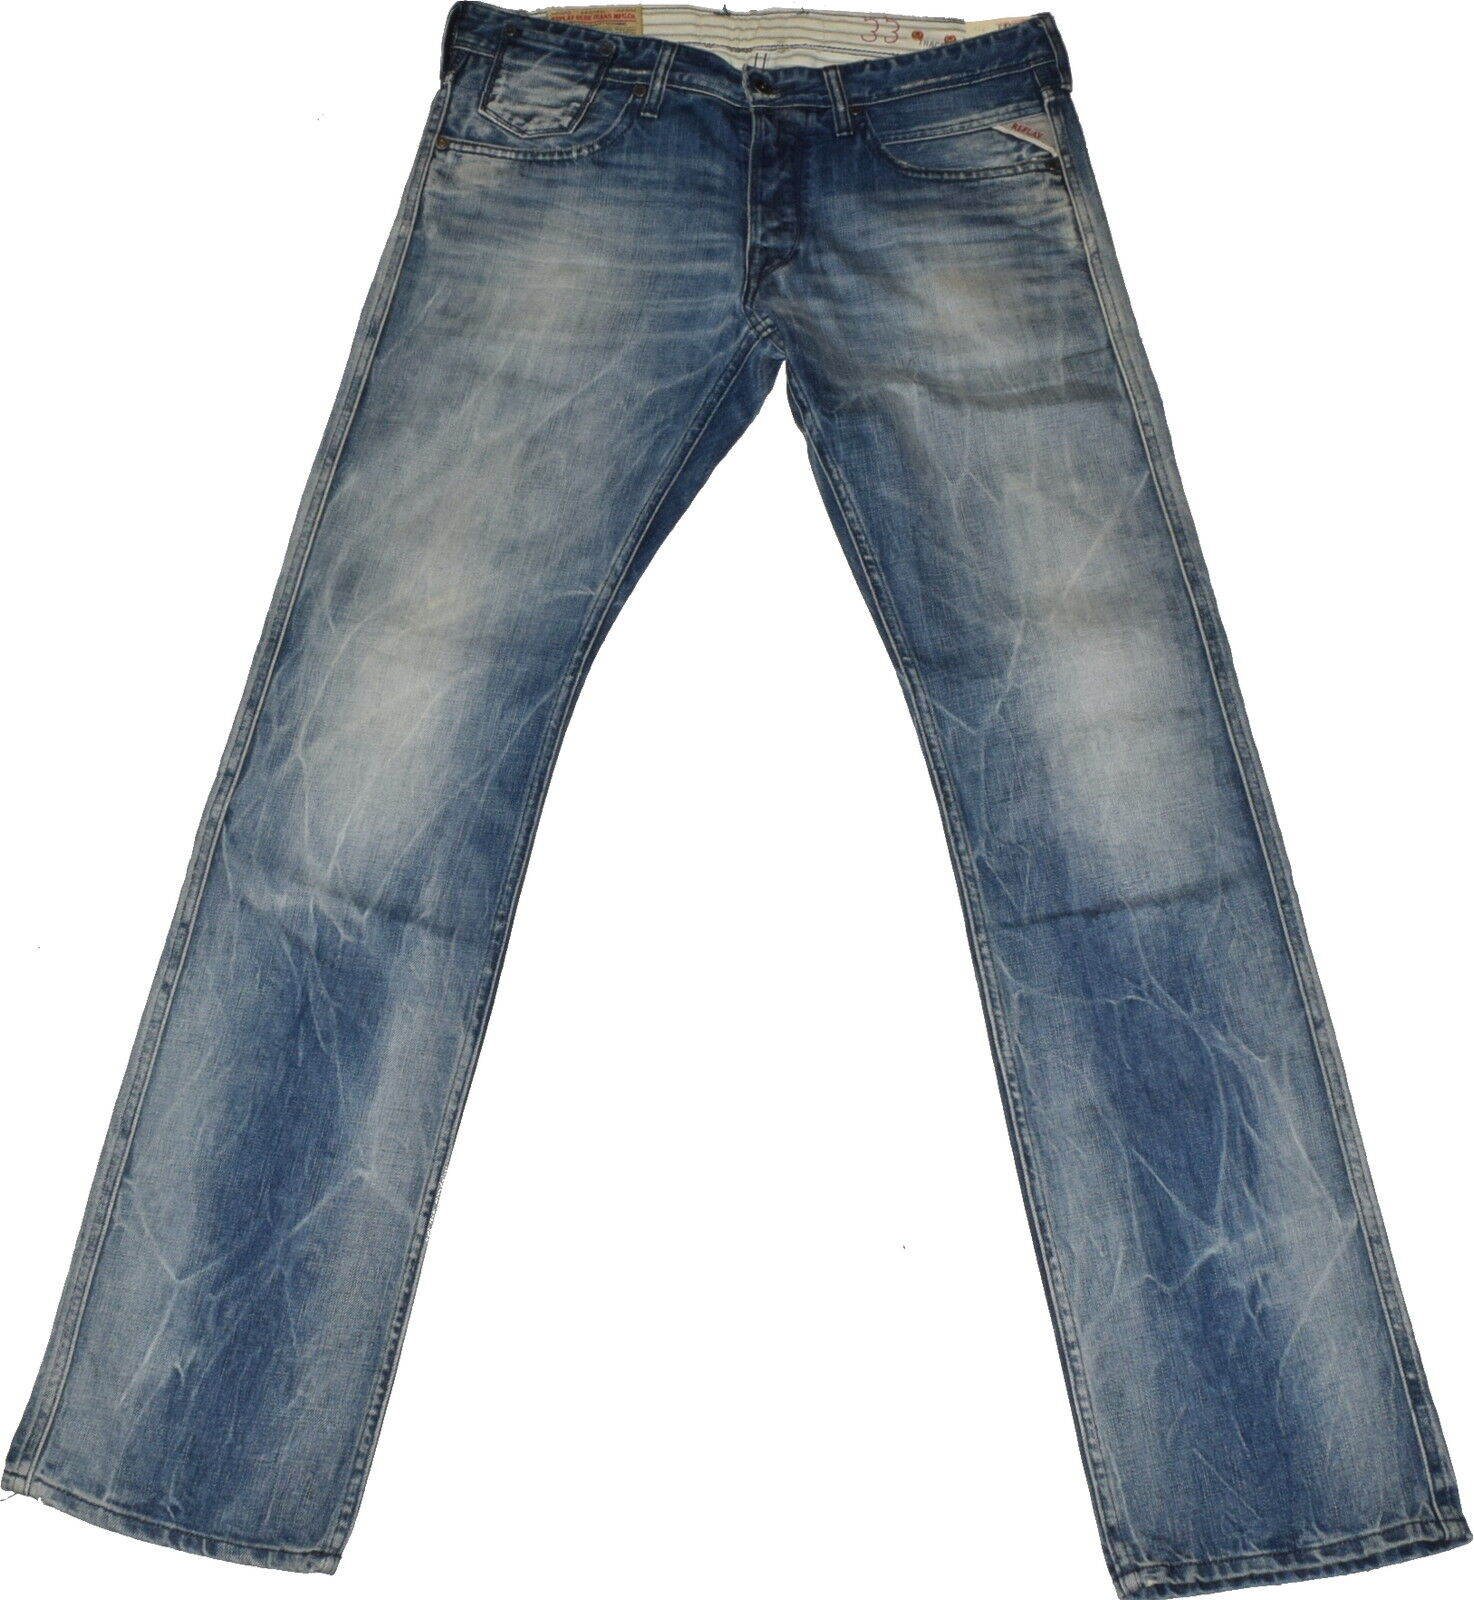 REPLAY Jeans Tracco ma 912 w33 l34 vintage used Dirty LOOK NUOVO